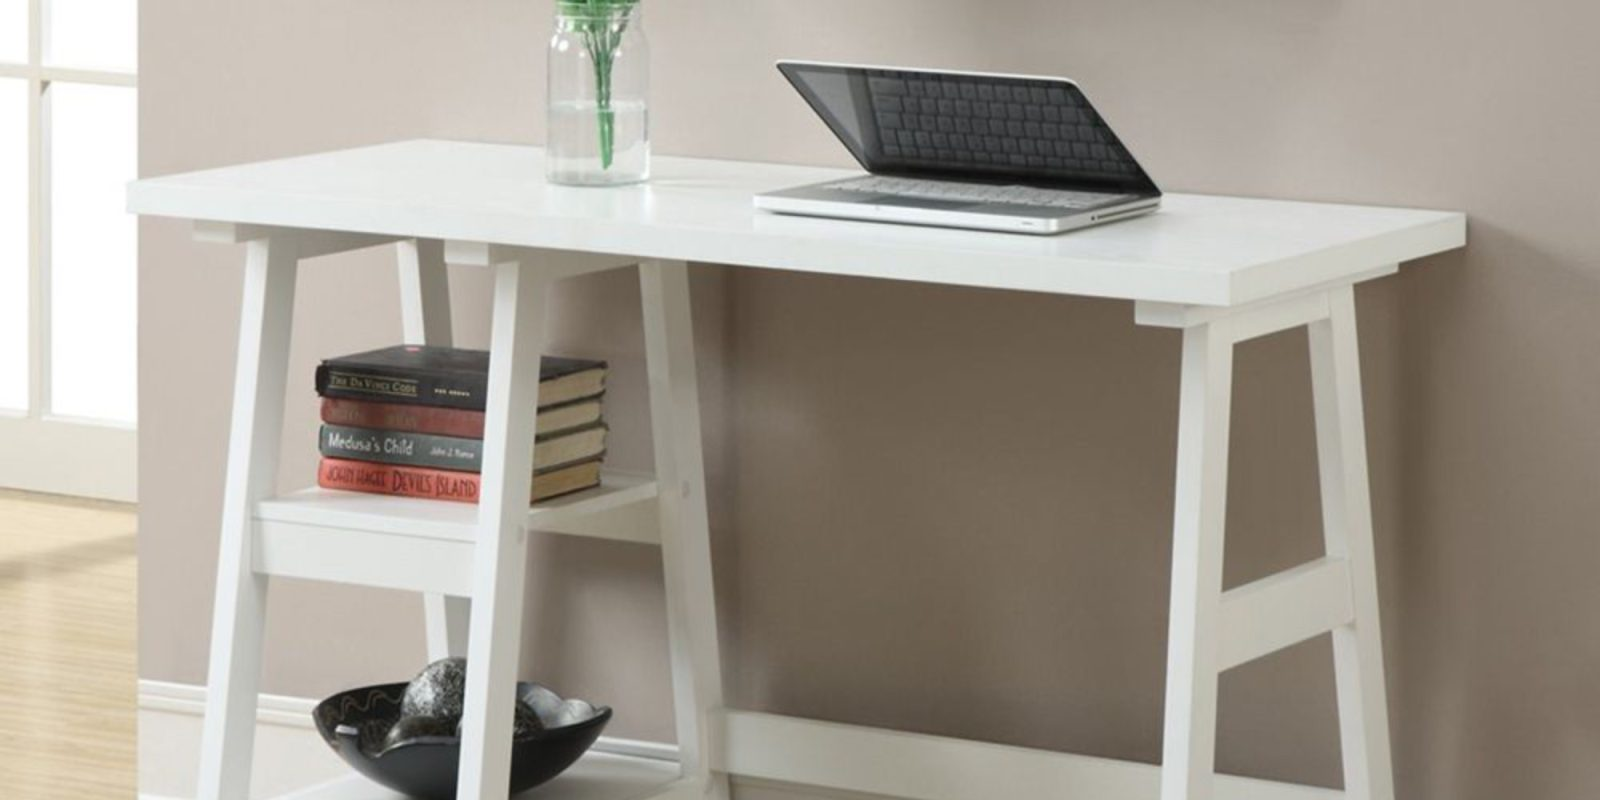 Shake up a home office for $76 with the all-white Trestle Desk (Save 25%)